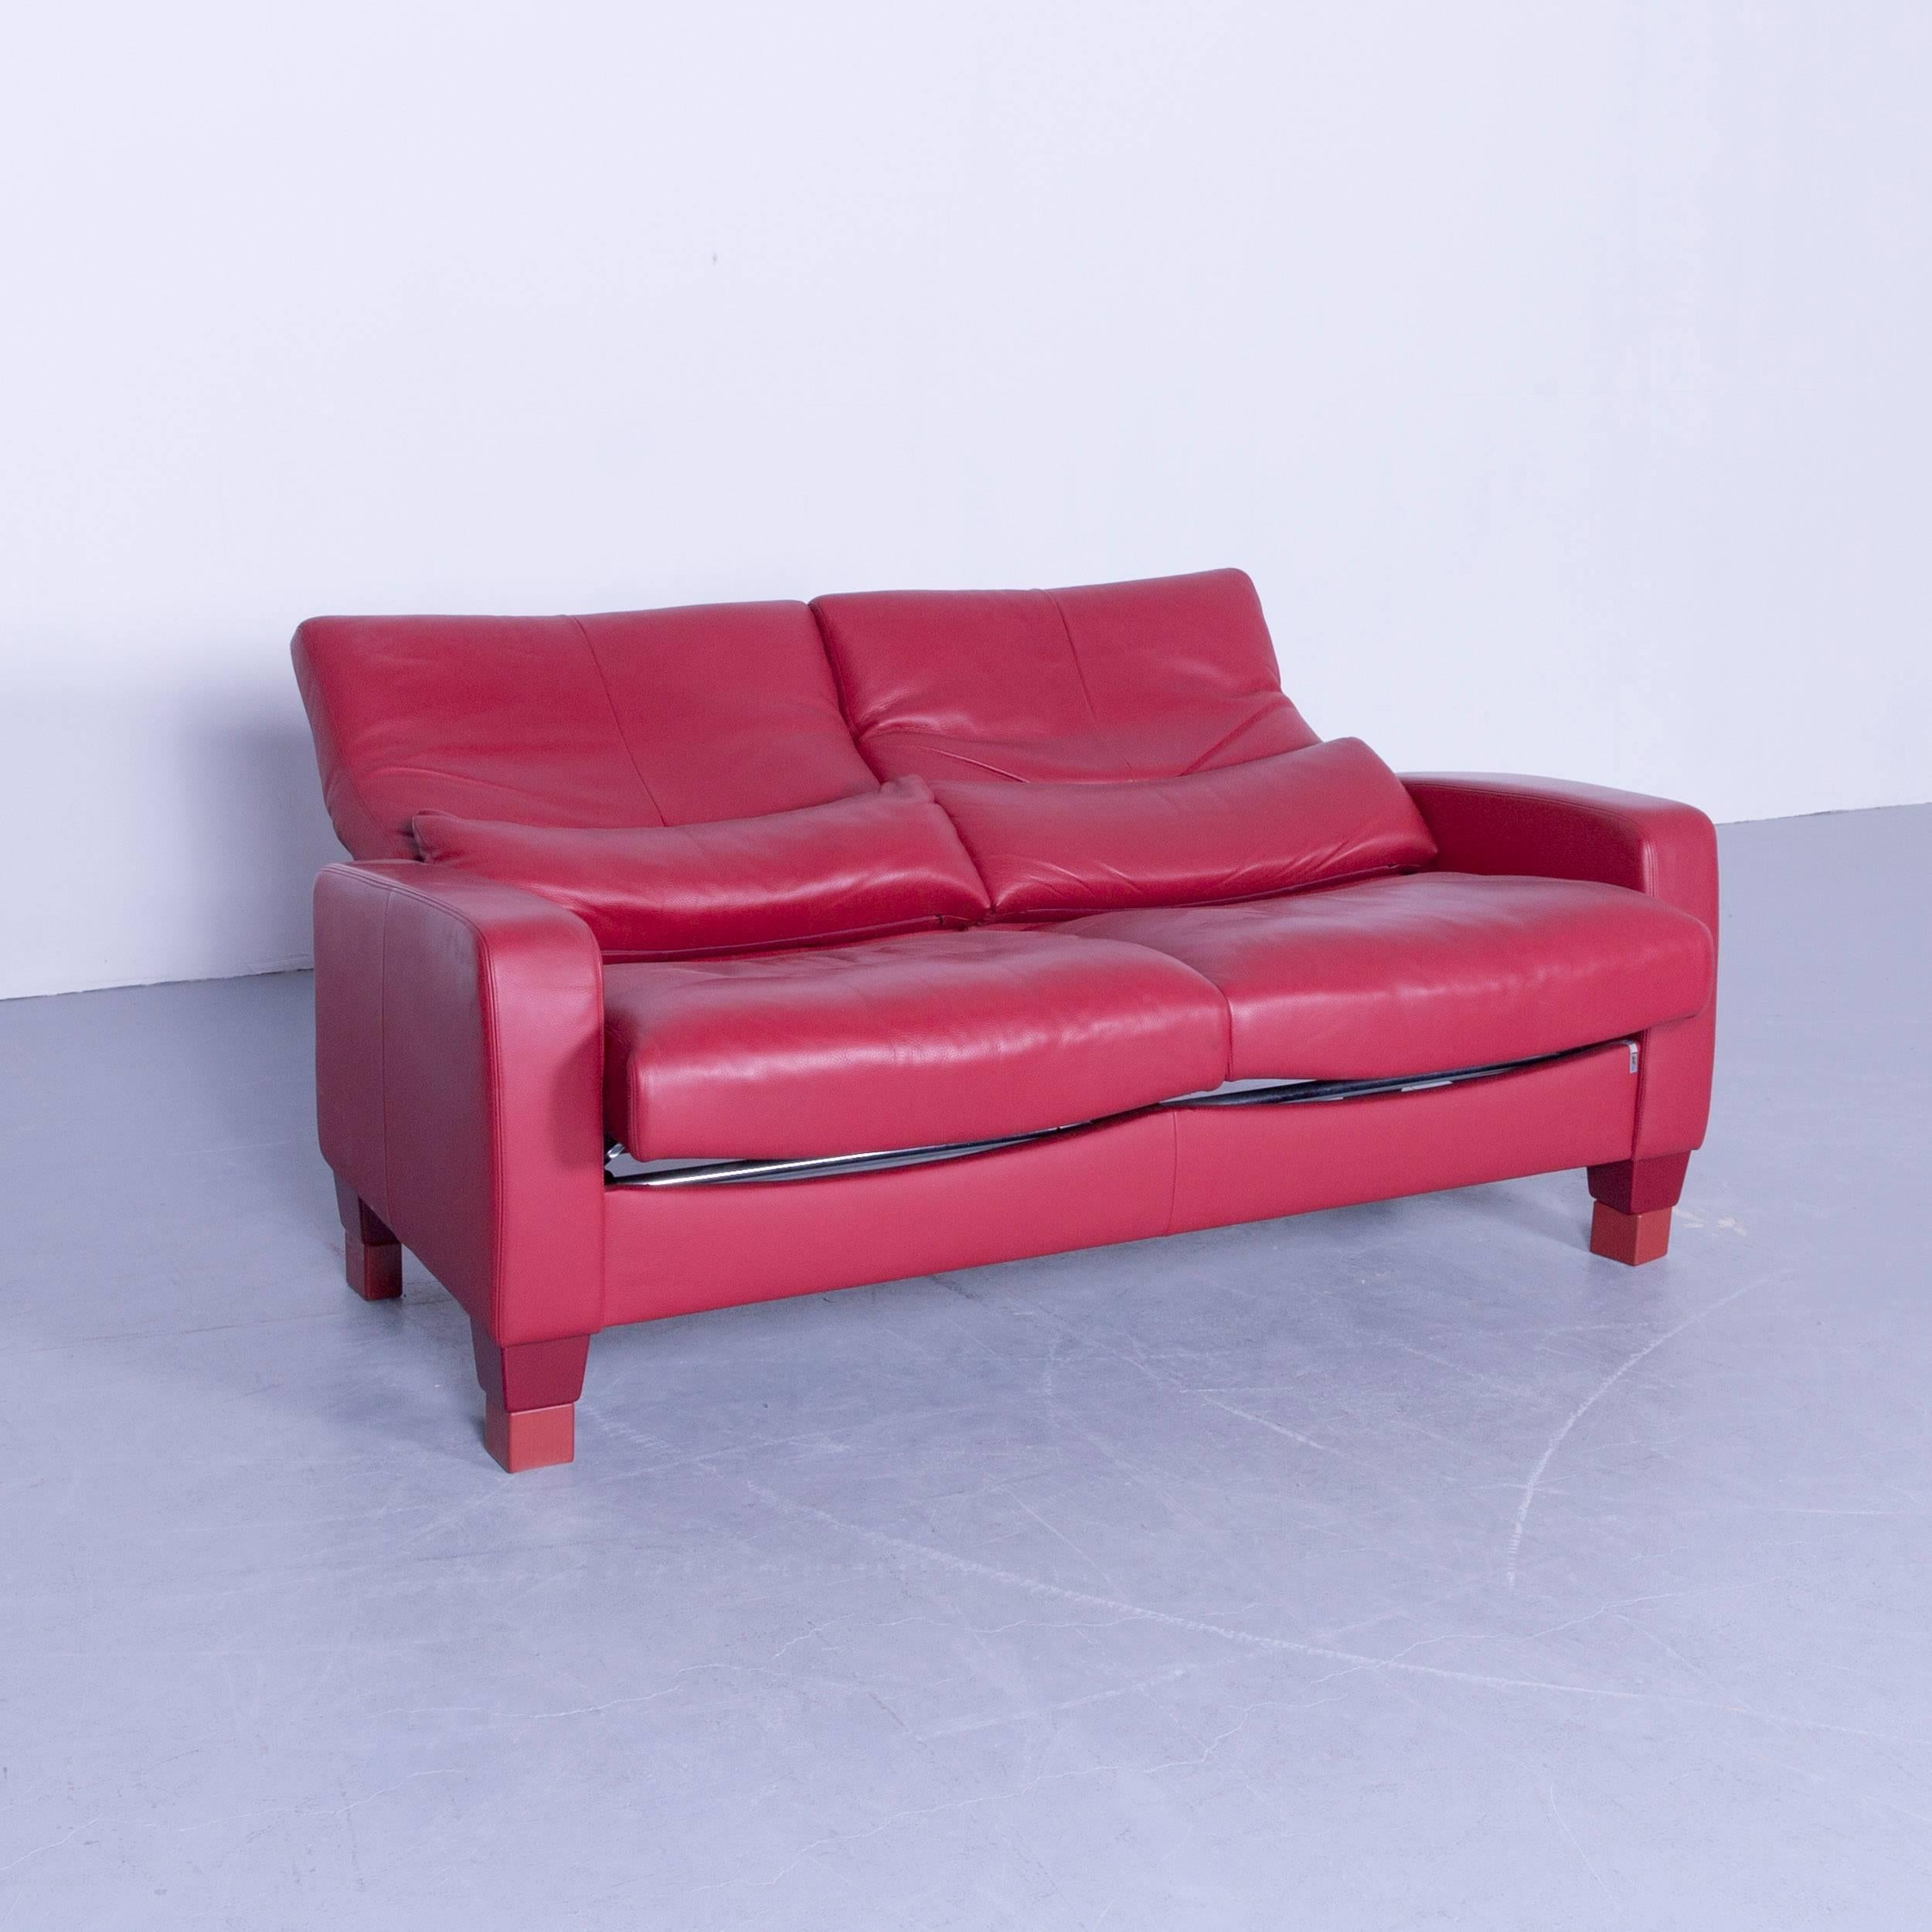 Erpo Designer Sofa Set Leather Red Two Seat and Armchair Couch